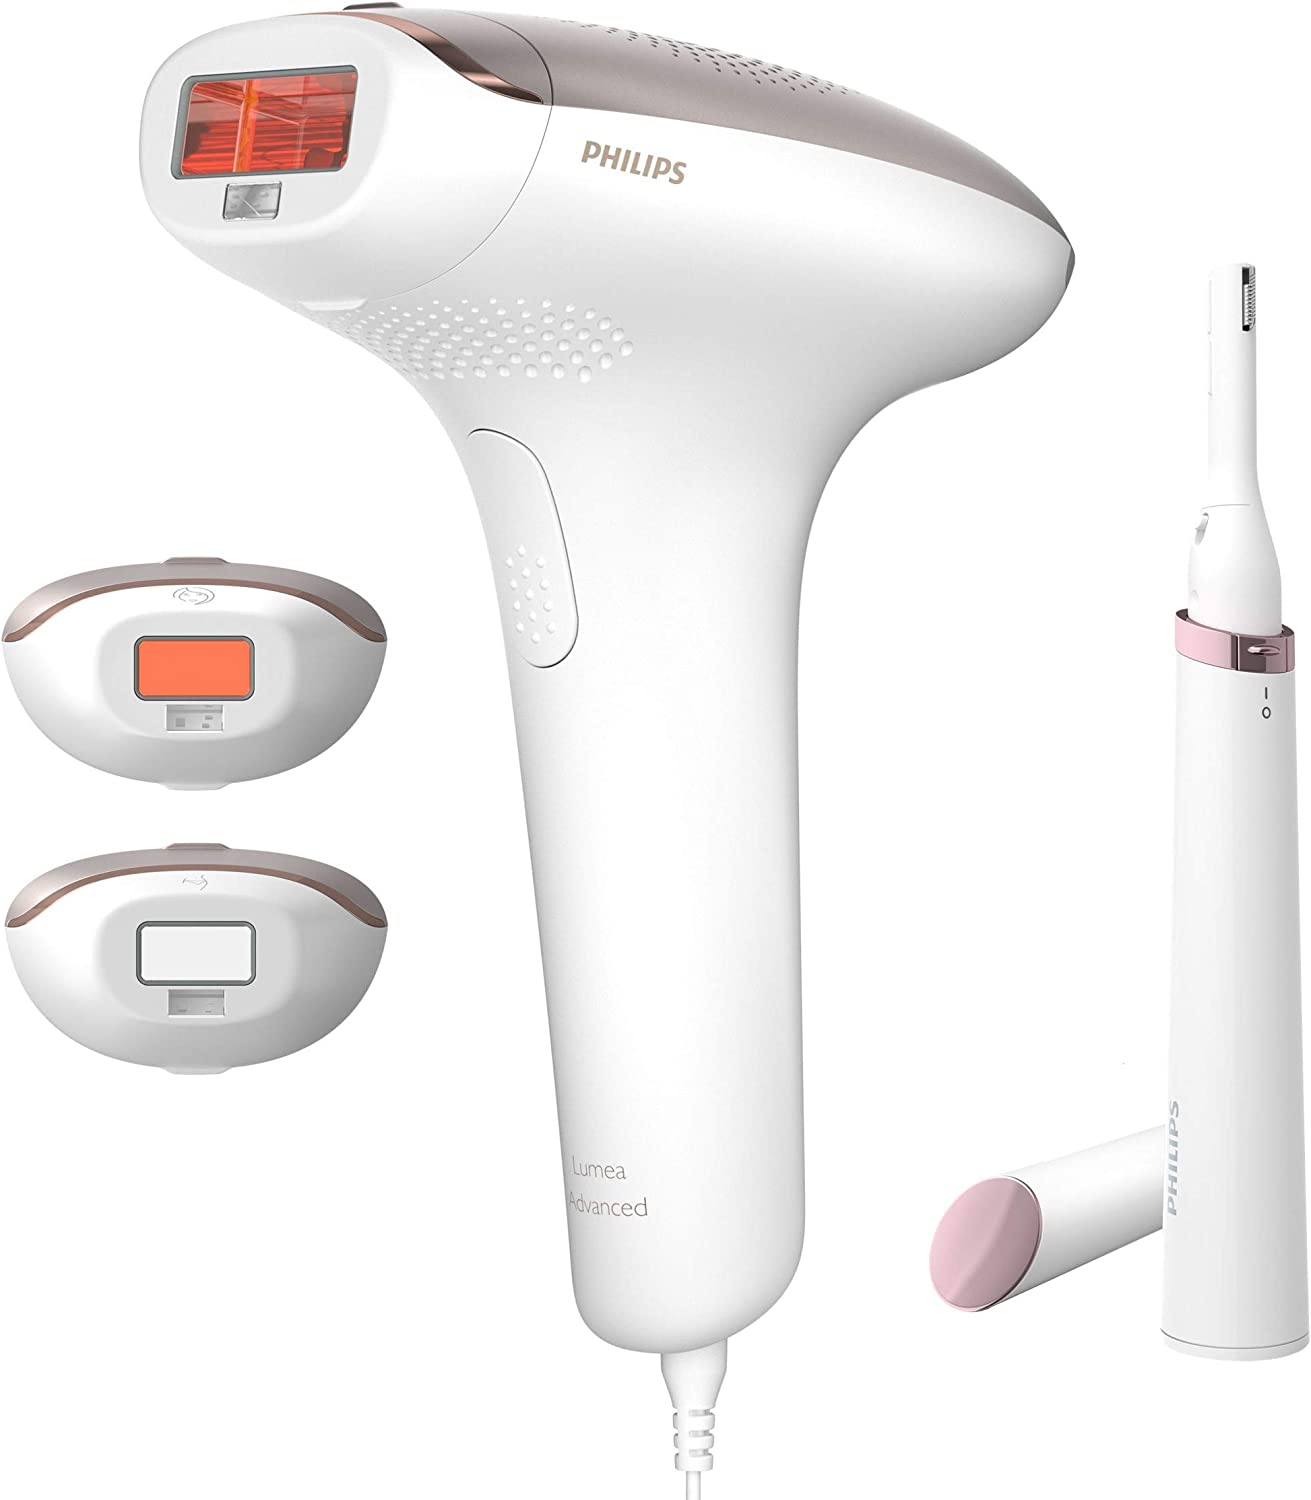 Philips Lumea Advanced IPL SC1998/00 Hair removal device for Body, Face and Bikini - same as SC1999/00 Corded with US adapter plug - Worldwide